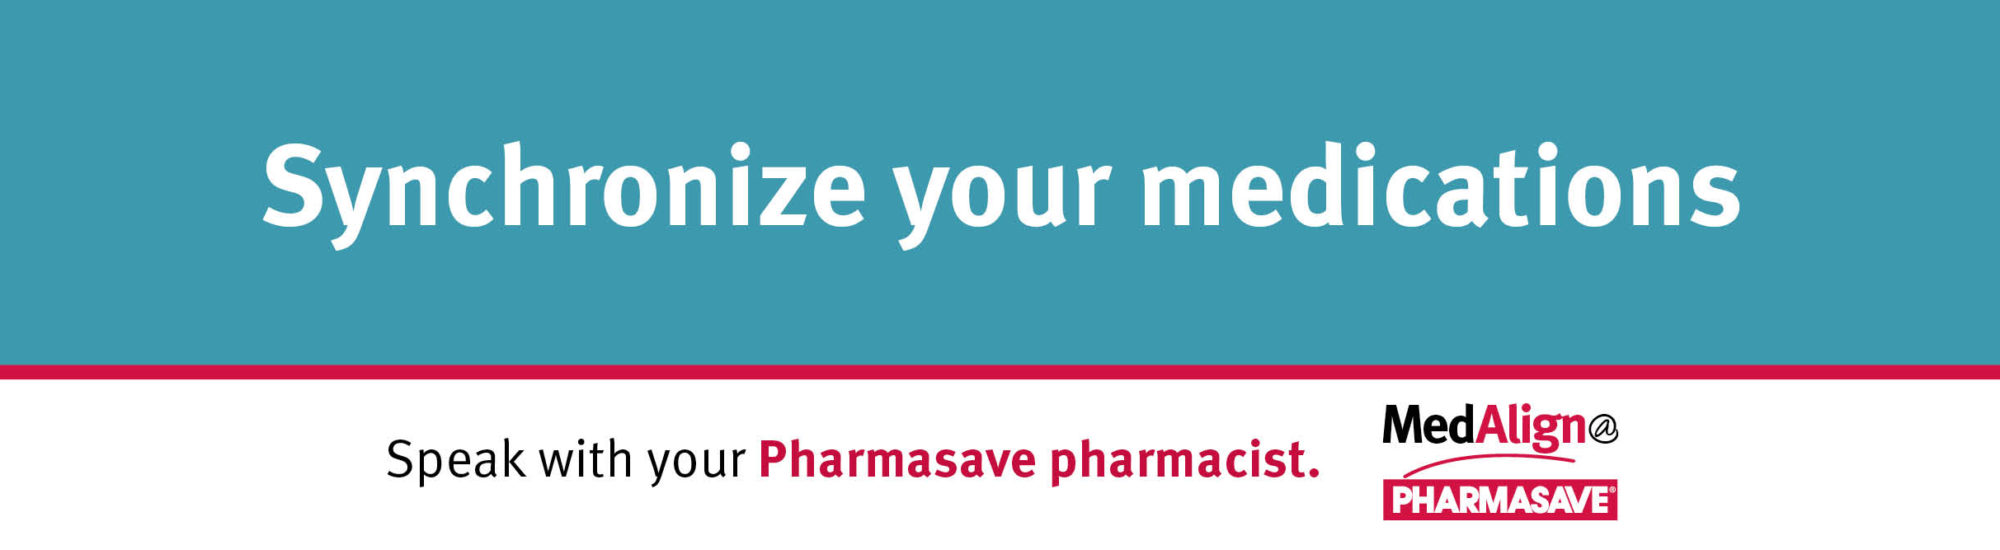 Ask your Pharmacist to help you synchronize your medications.